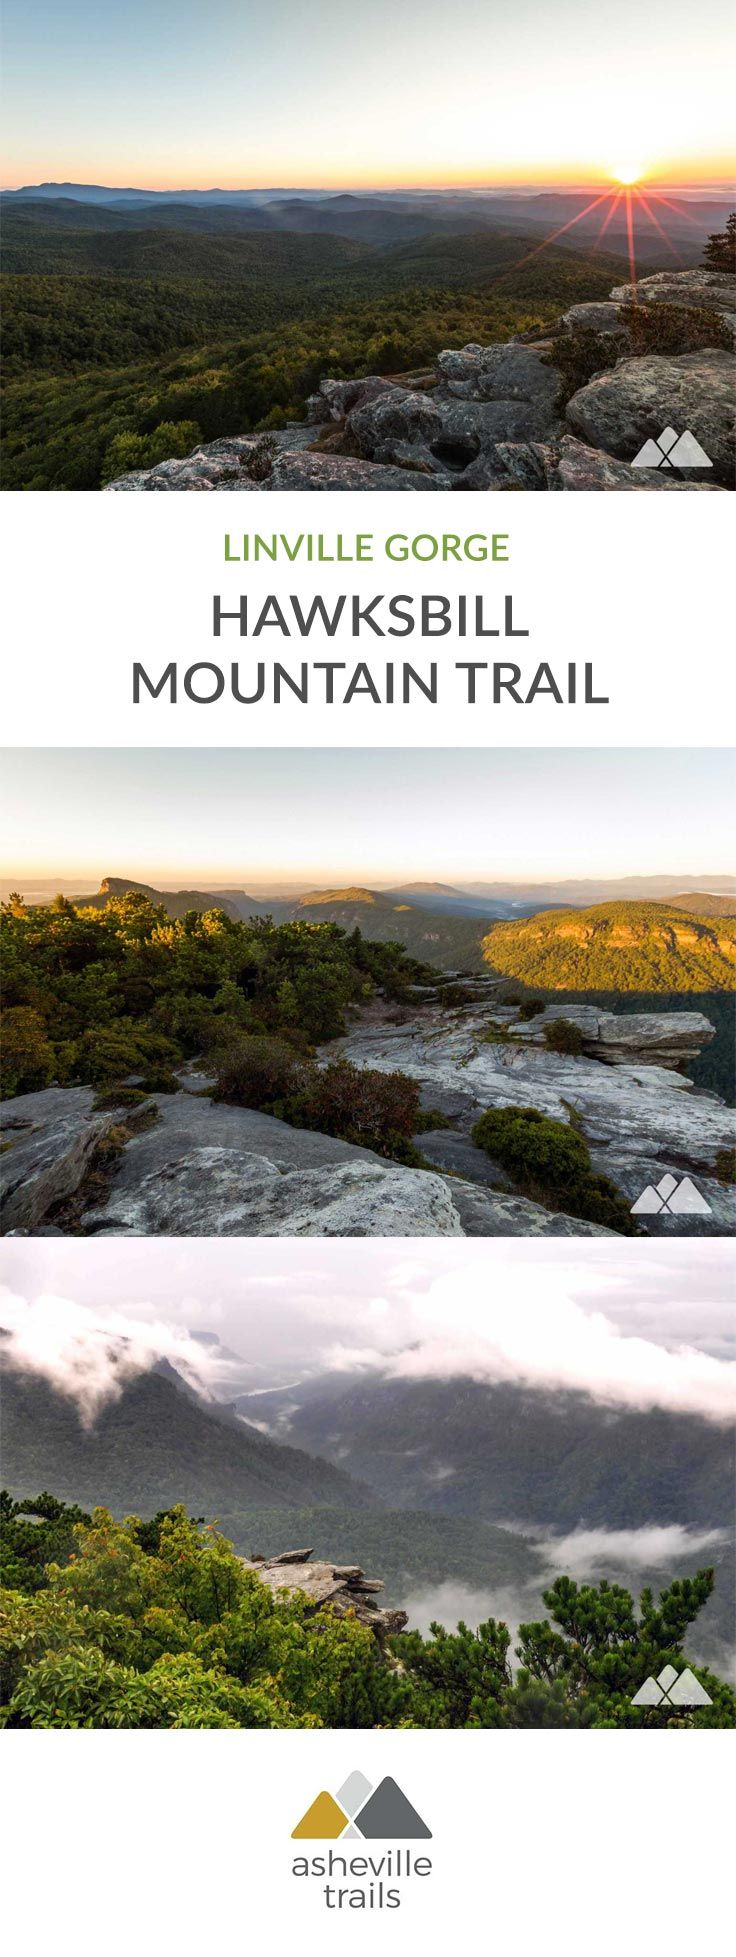 Hike to the Hawksbill Mountain summit in NC's Linville Gorge, scaling the mountain's craggy, jagged summit to outstanding mountaintop views and spectacular sunrises. #hiking #trailrunning #camping #backpacking #asheville #nc #northcarolina #travel #outdoors #adventure